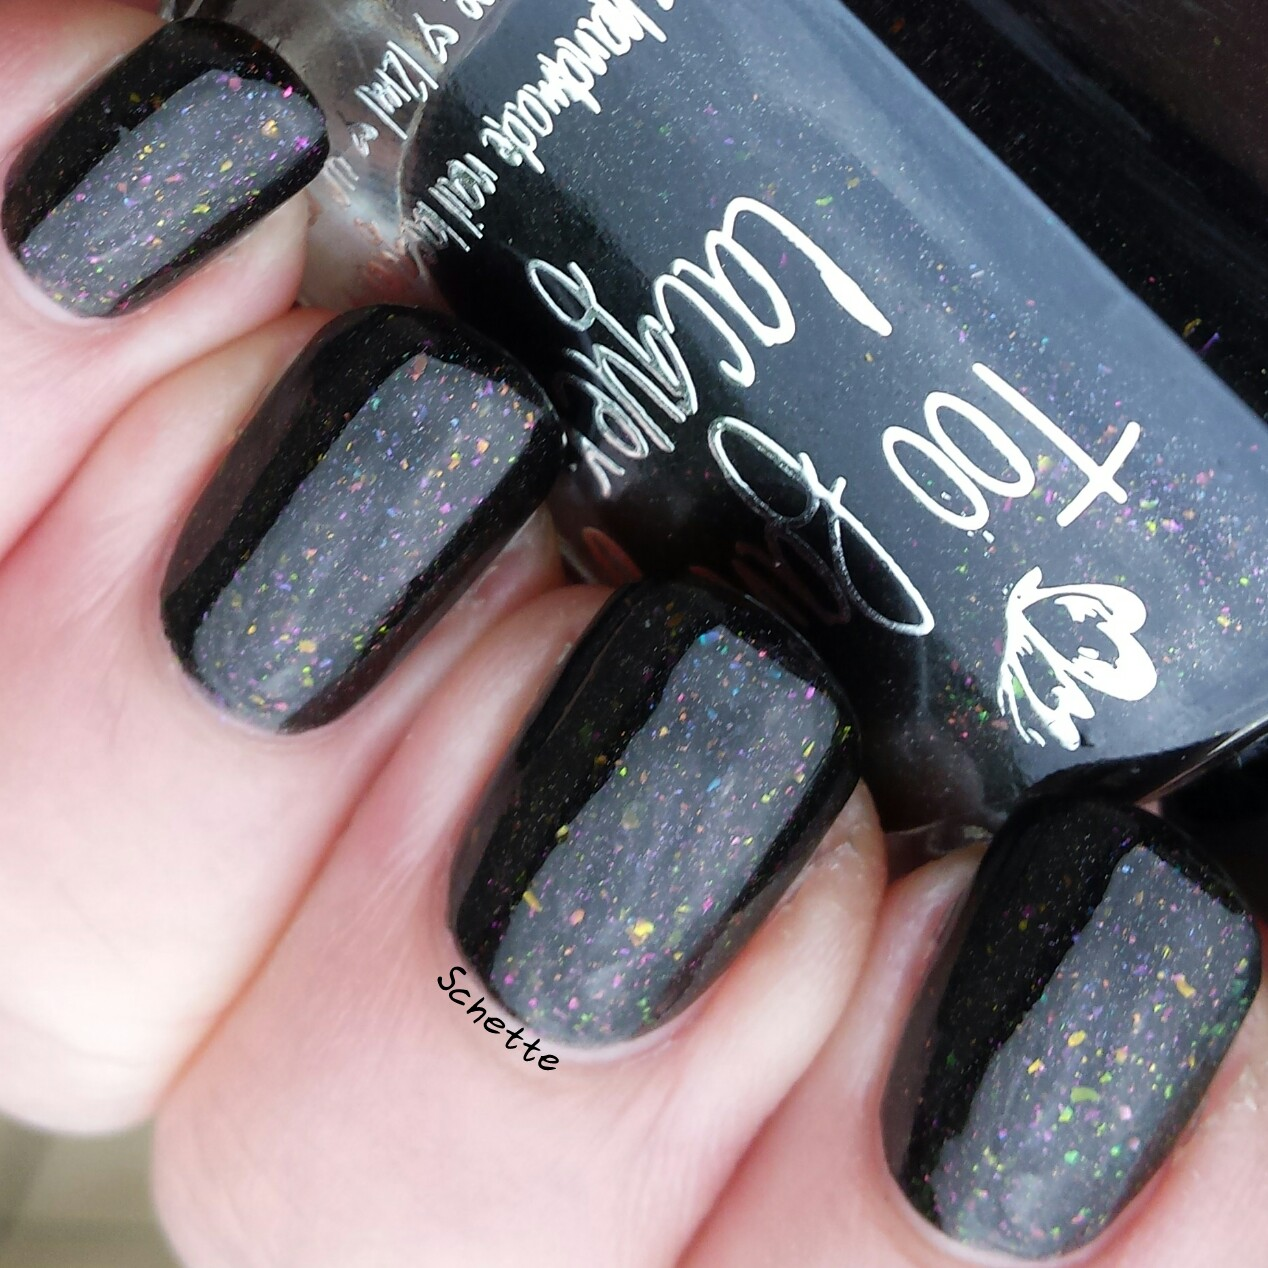 Too Fancy Lacquer - Party in the dark